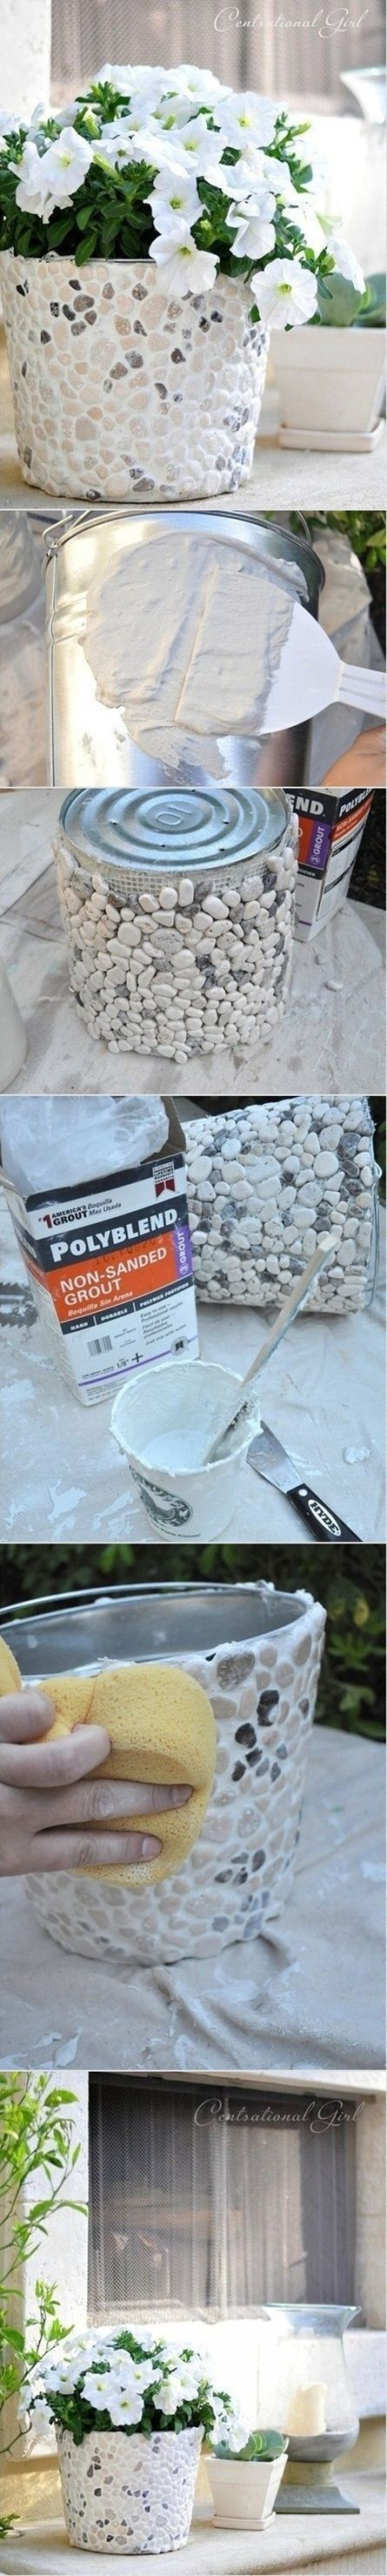 DIY Rock Covered Bucket An Easy Project You'll Love   The WHOot